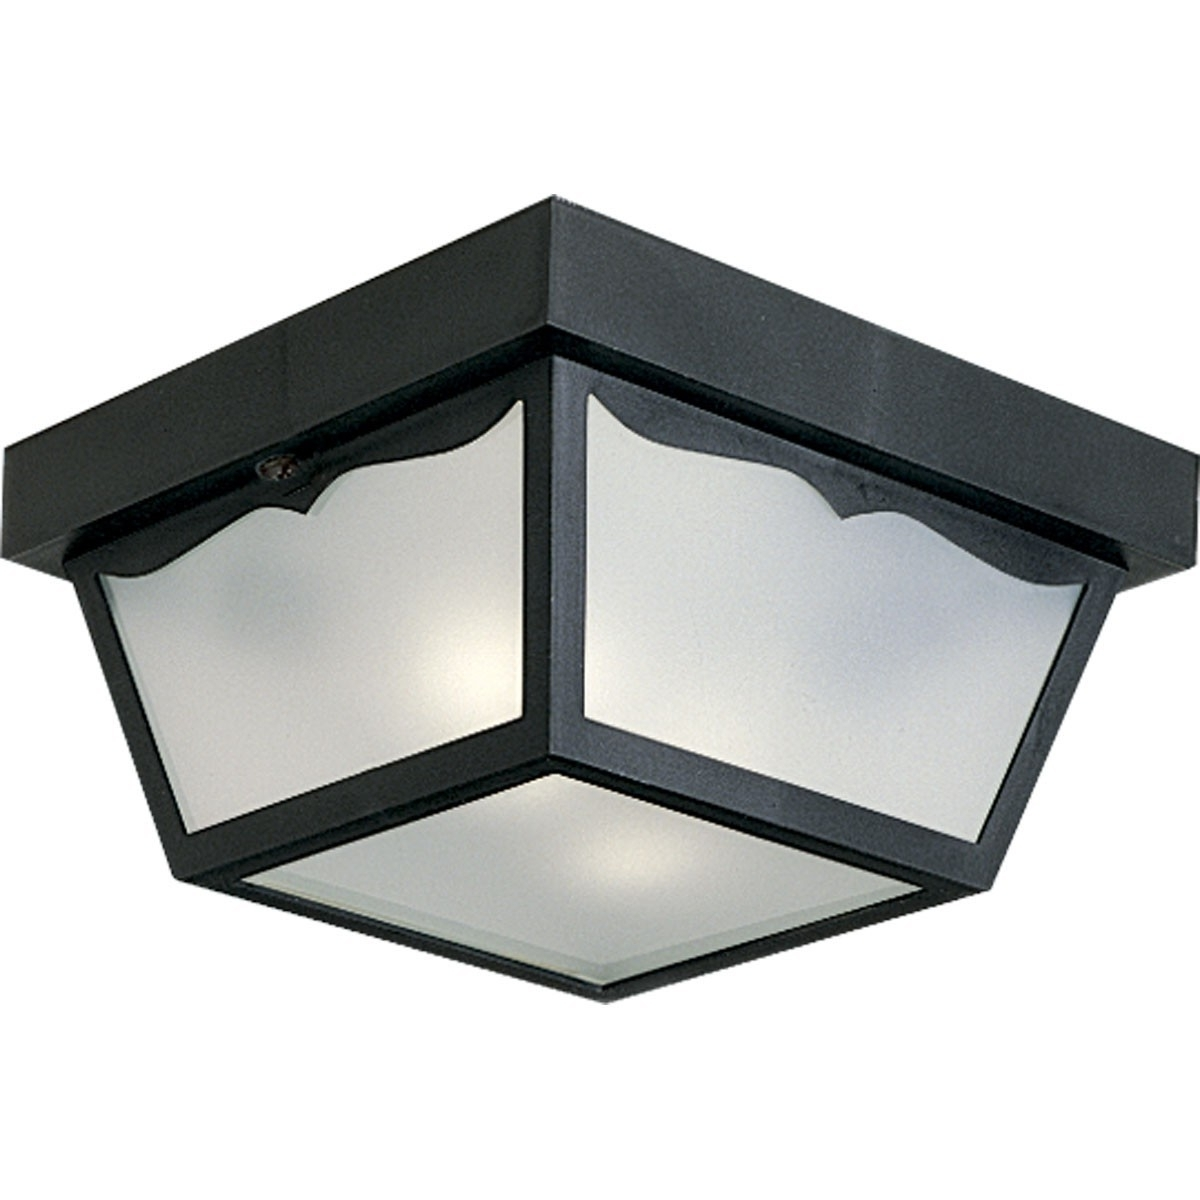 Outdoor Ceiling Lights Regarding Well Known 60W Outdoor Flush Mount Non Metallic Ceiling Light – Progress (View 14 of 20)